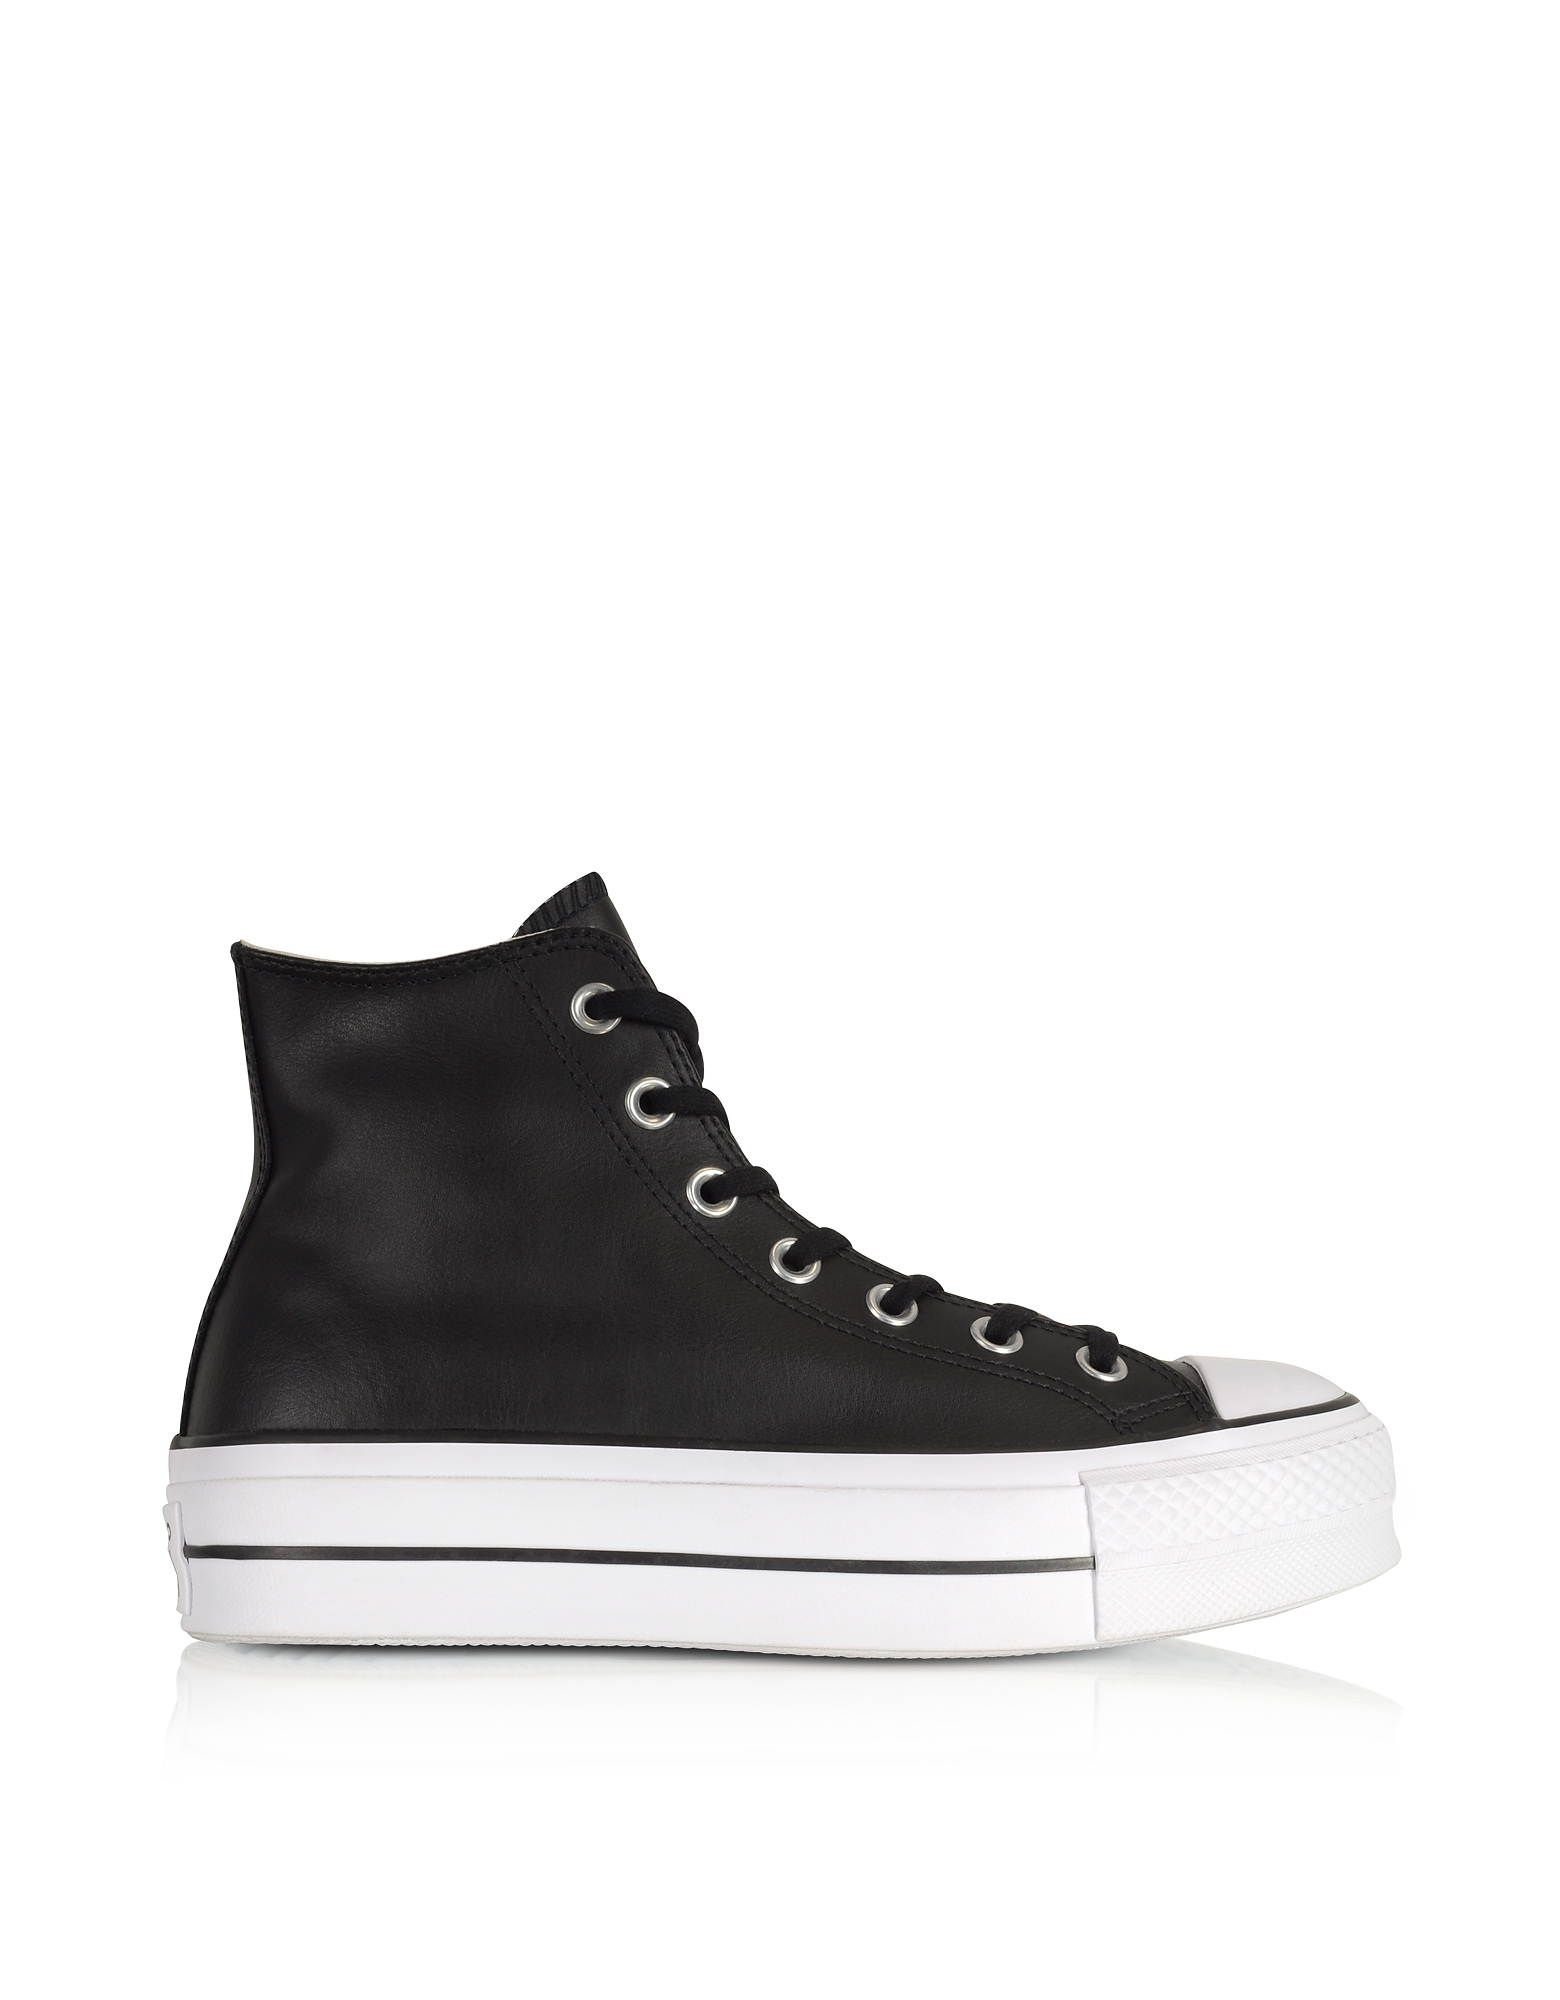 Chuck Taylor All Star High Flatform Sneakers in Pelle Nera